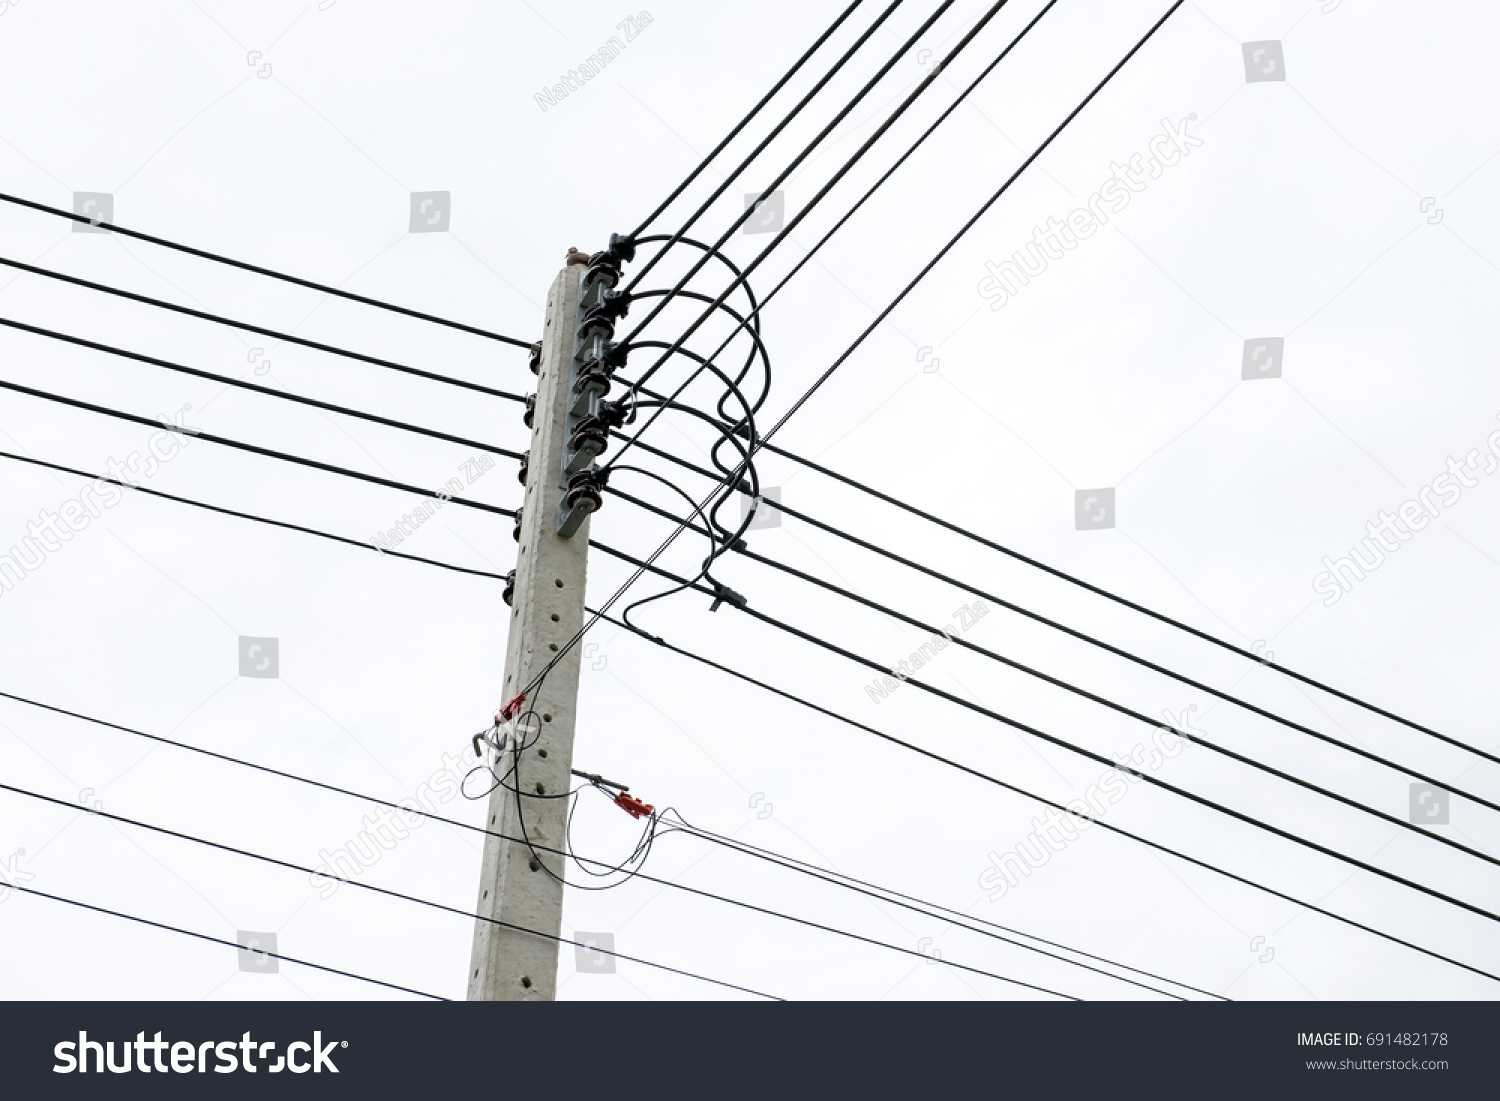 hight resolution of electric pole connect to the high voltage electric wires